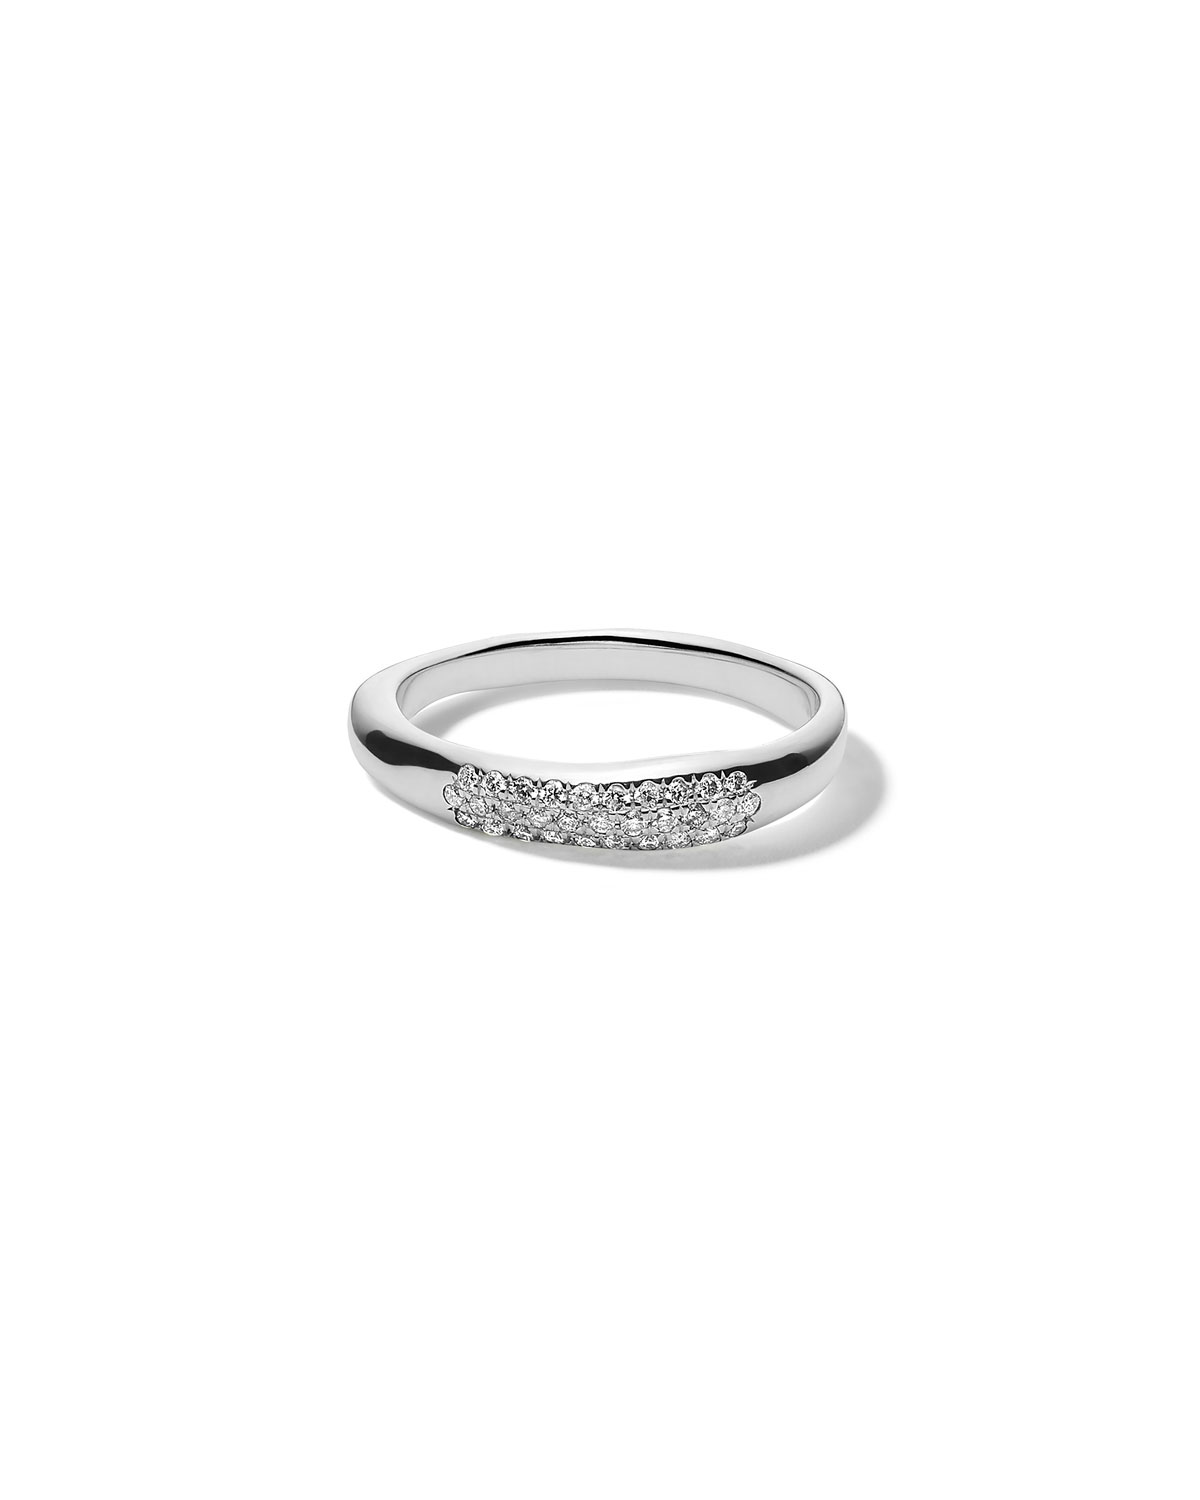 Ippolita Stardust Pave Squiggle Band Ring in Sterling Silver with Diamonds, Size 7